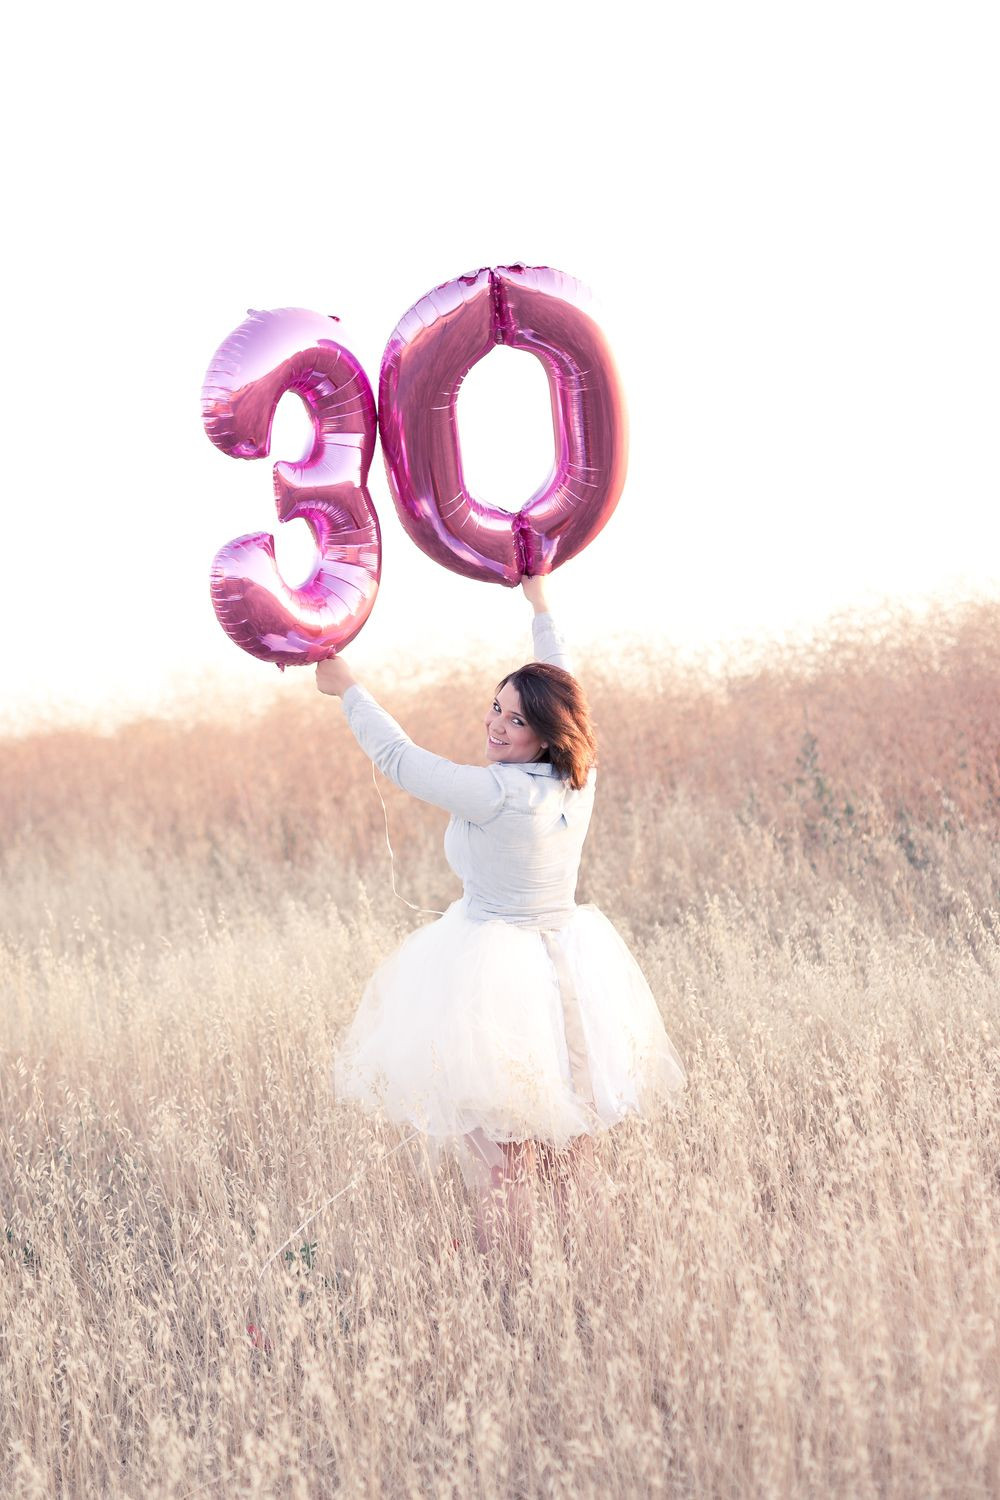 Best ideas about 30th Birthday Photoshoot Ideas . Save or Pin 30th Birthday Shoot shoot 30 Now.